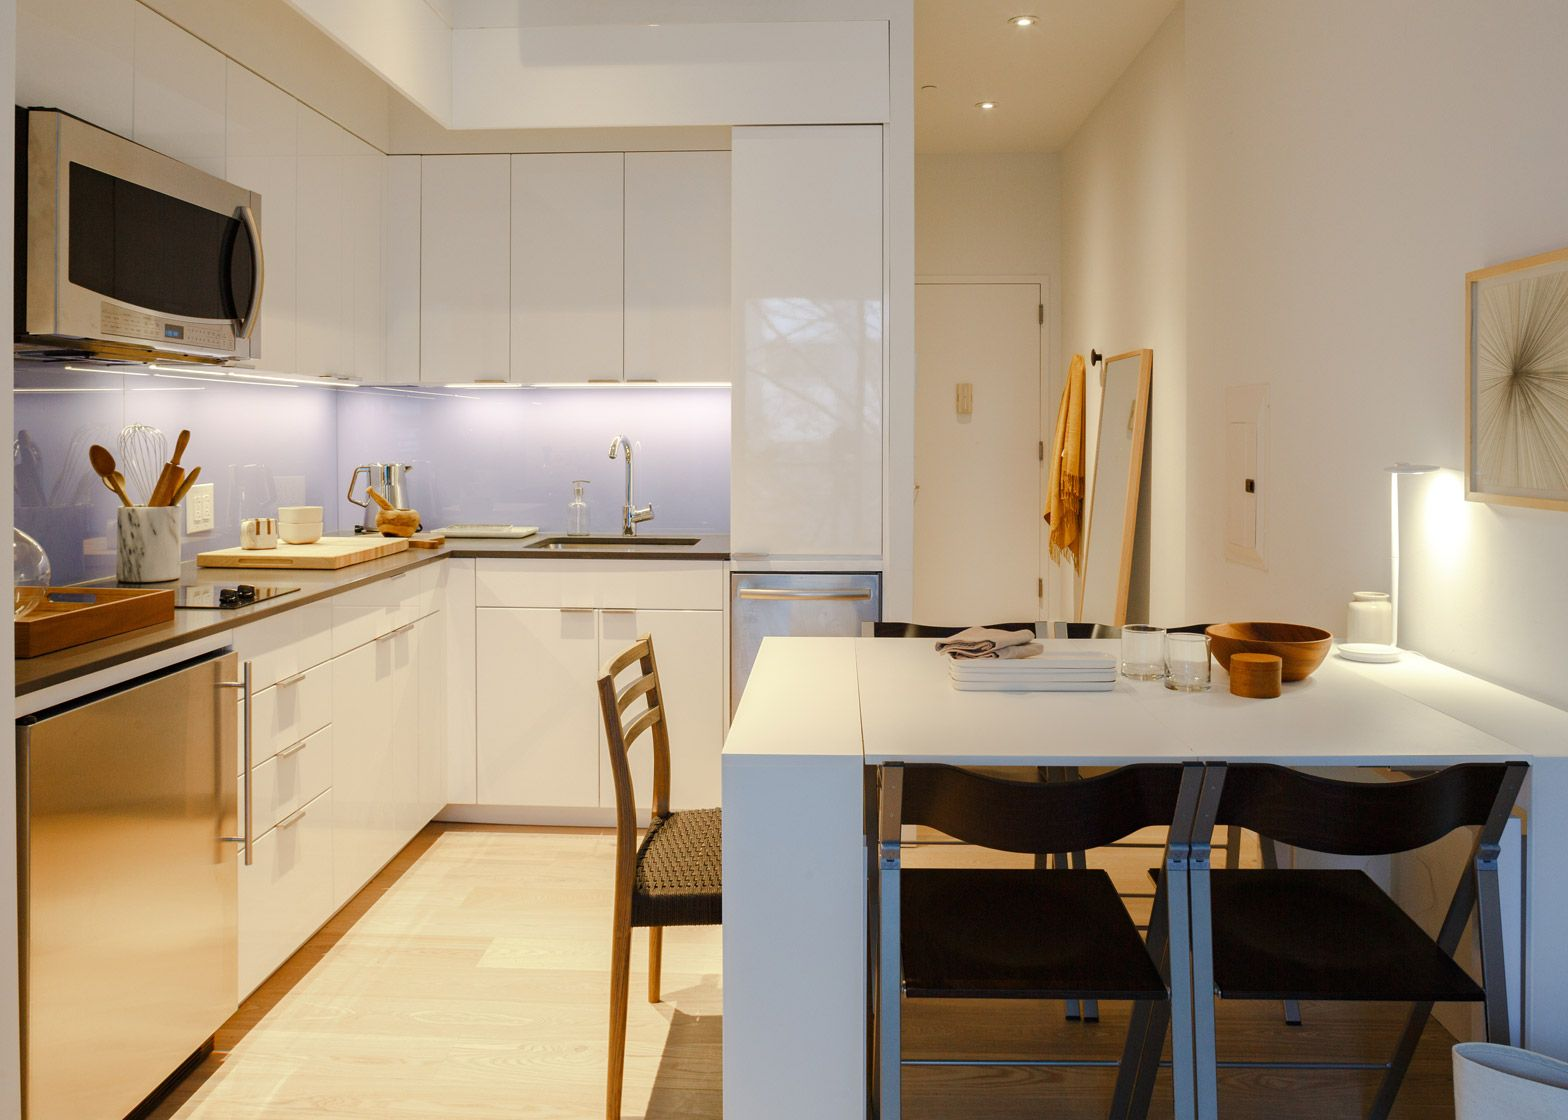 Carmel Place (NYC\'s First Micro-Apartment Tower) - Interior ...